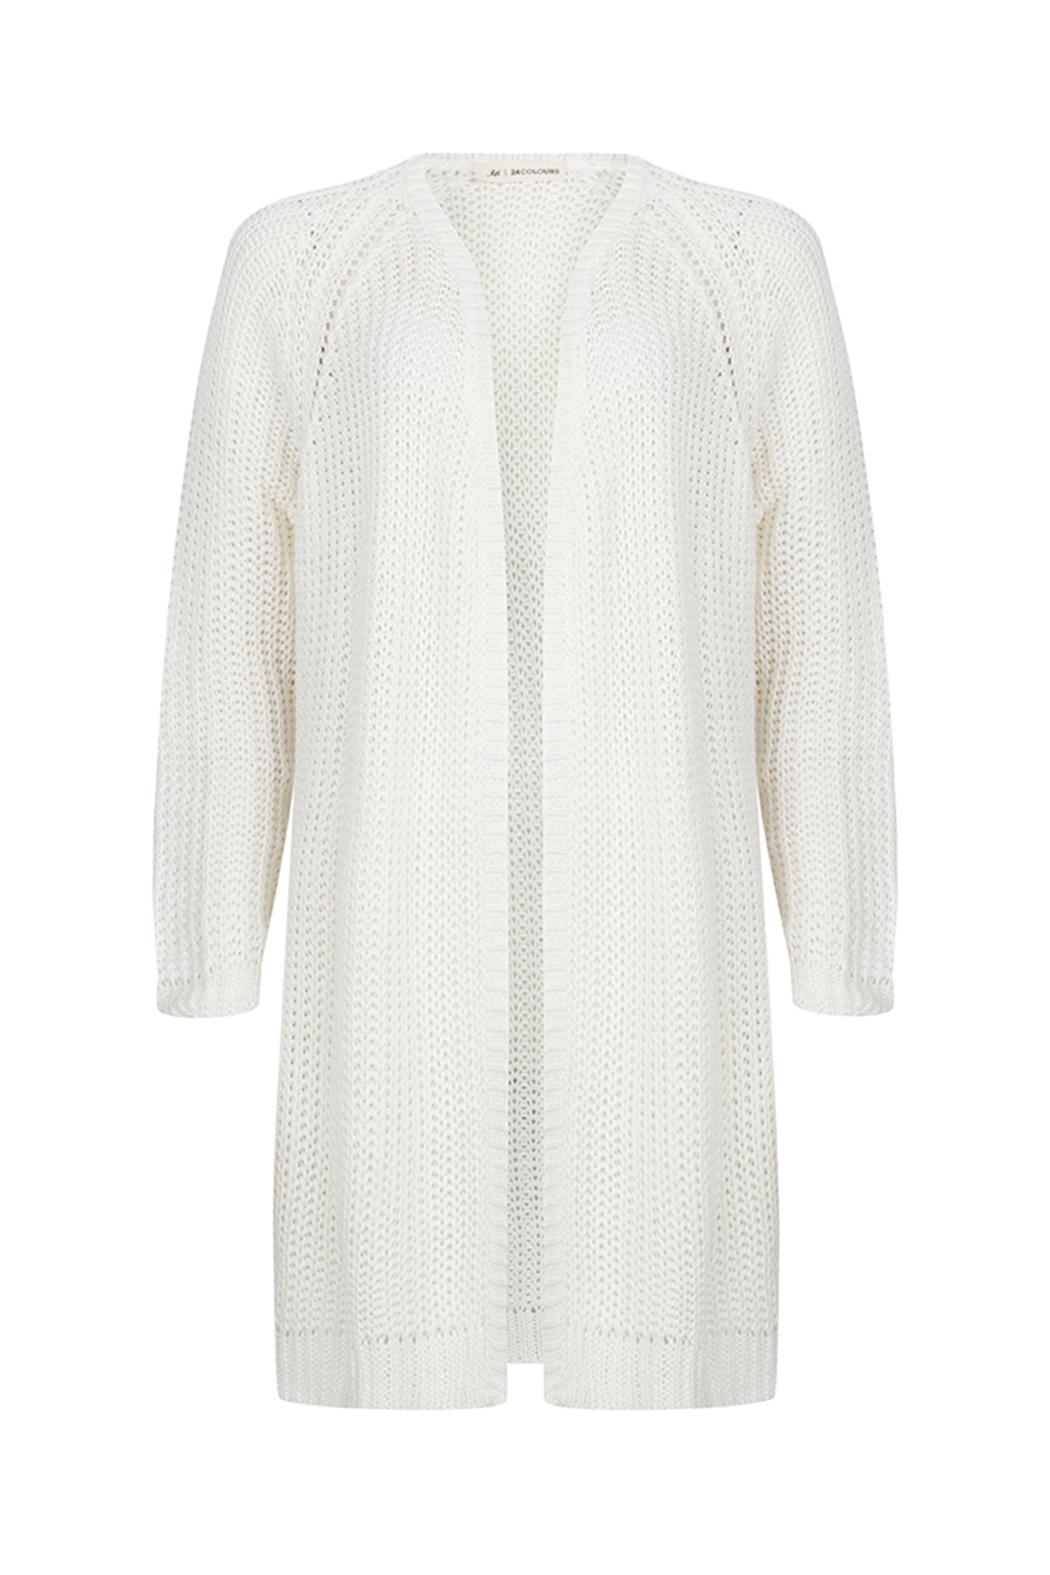 24colours Off White Cardigan from Netherlands by Wear for Love ...